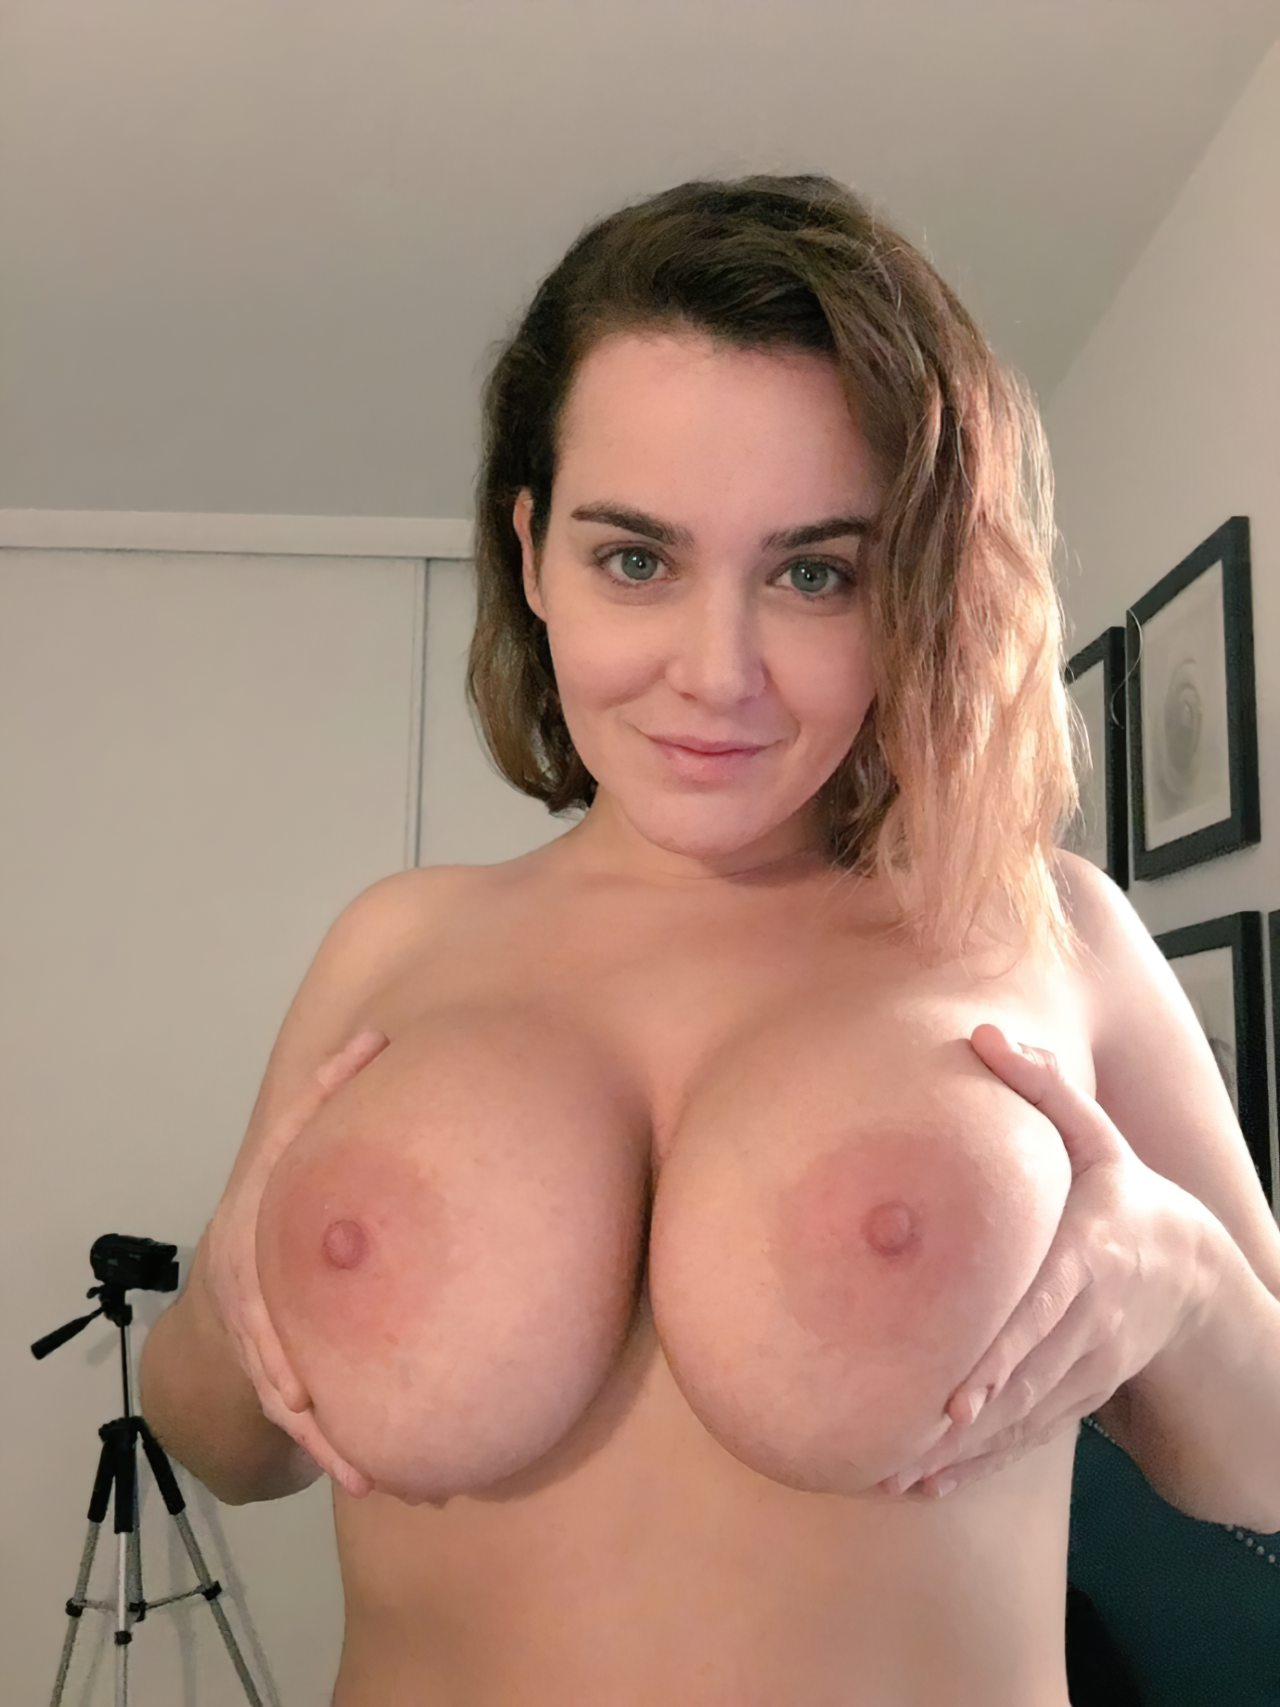 Topless (39)